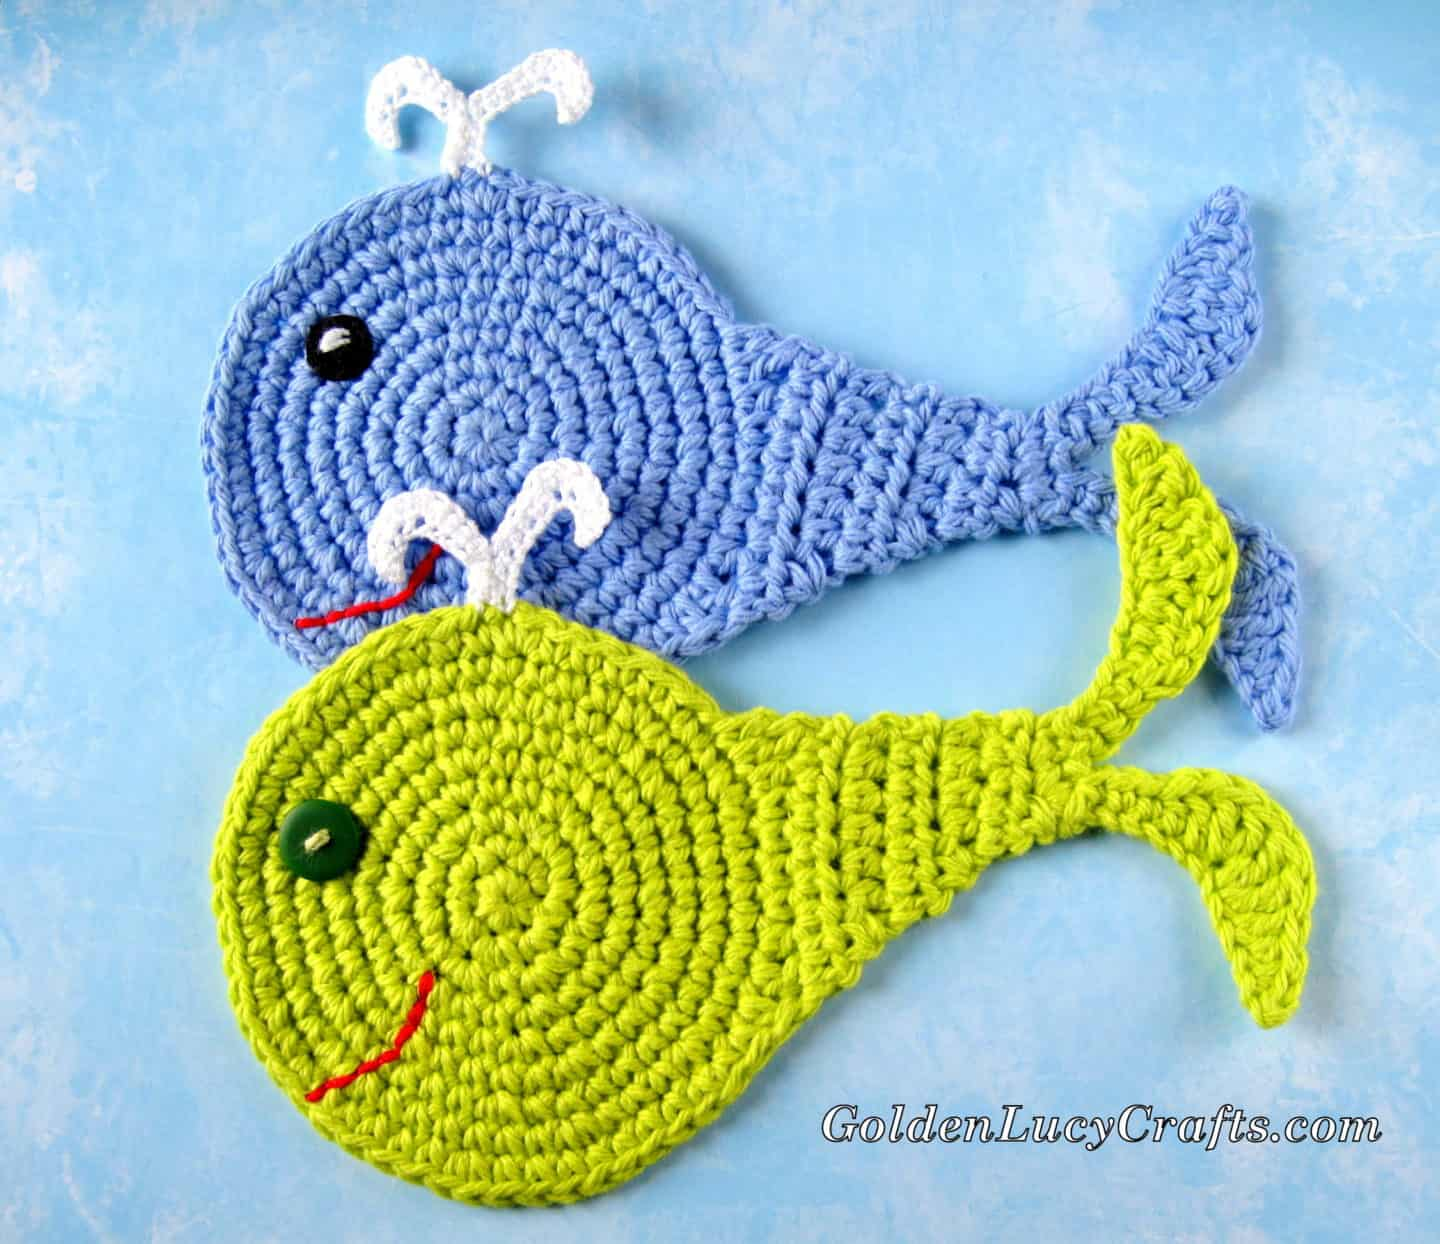 Whale crochet coasters in blue and green colors